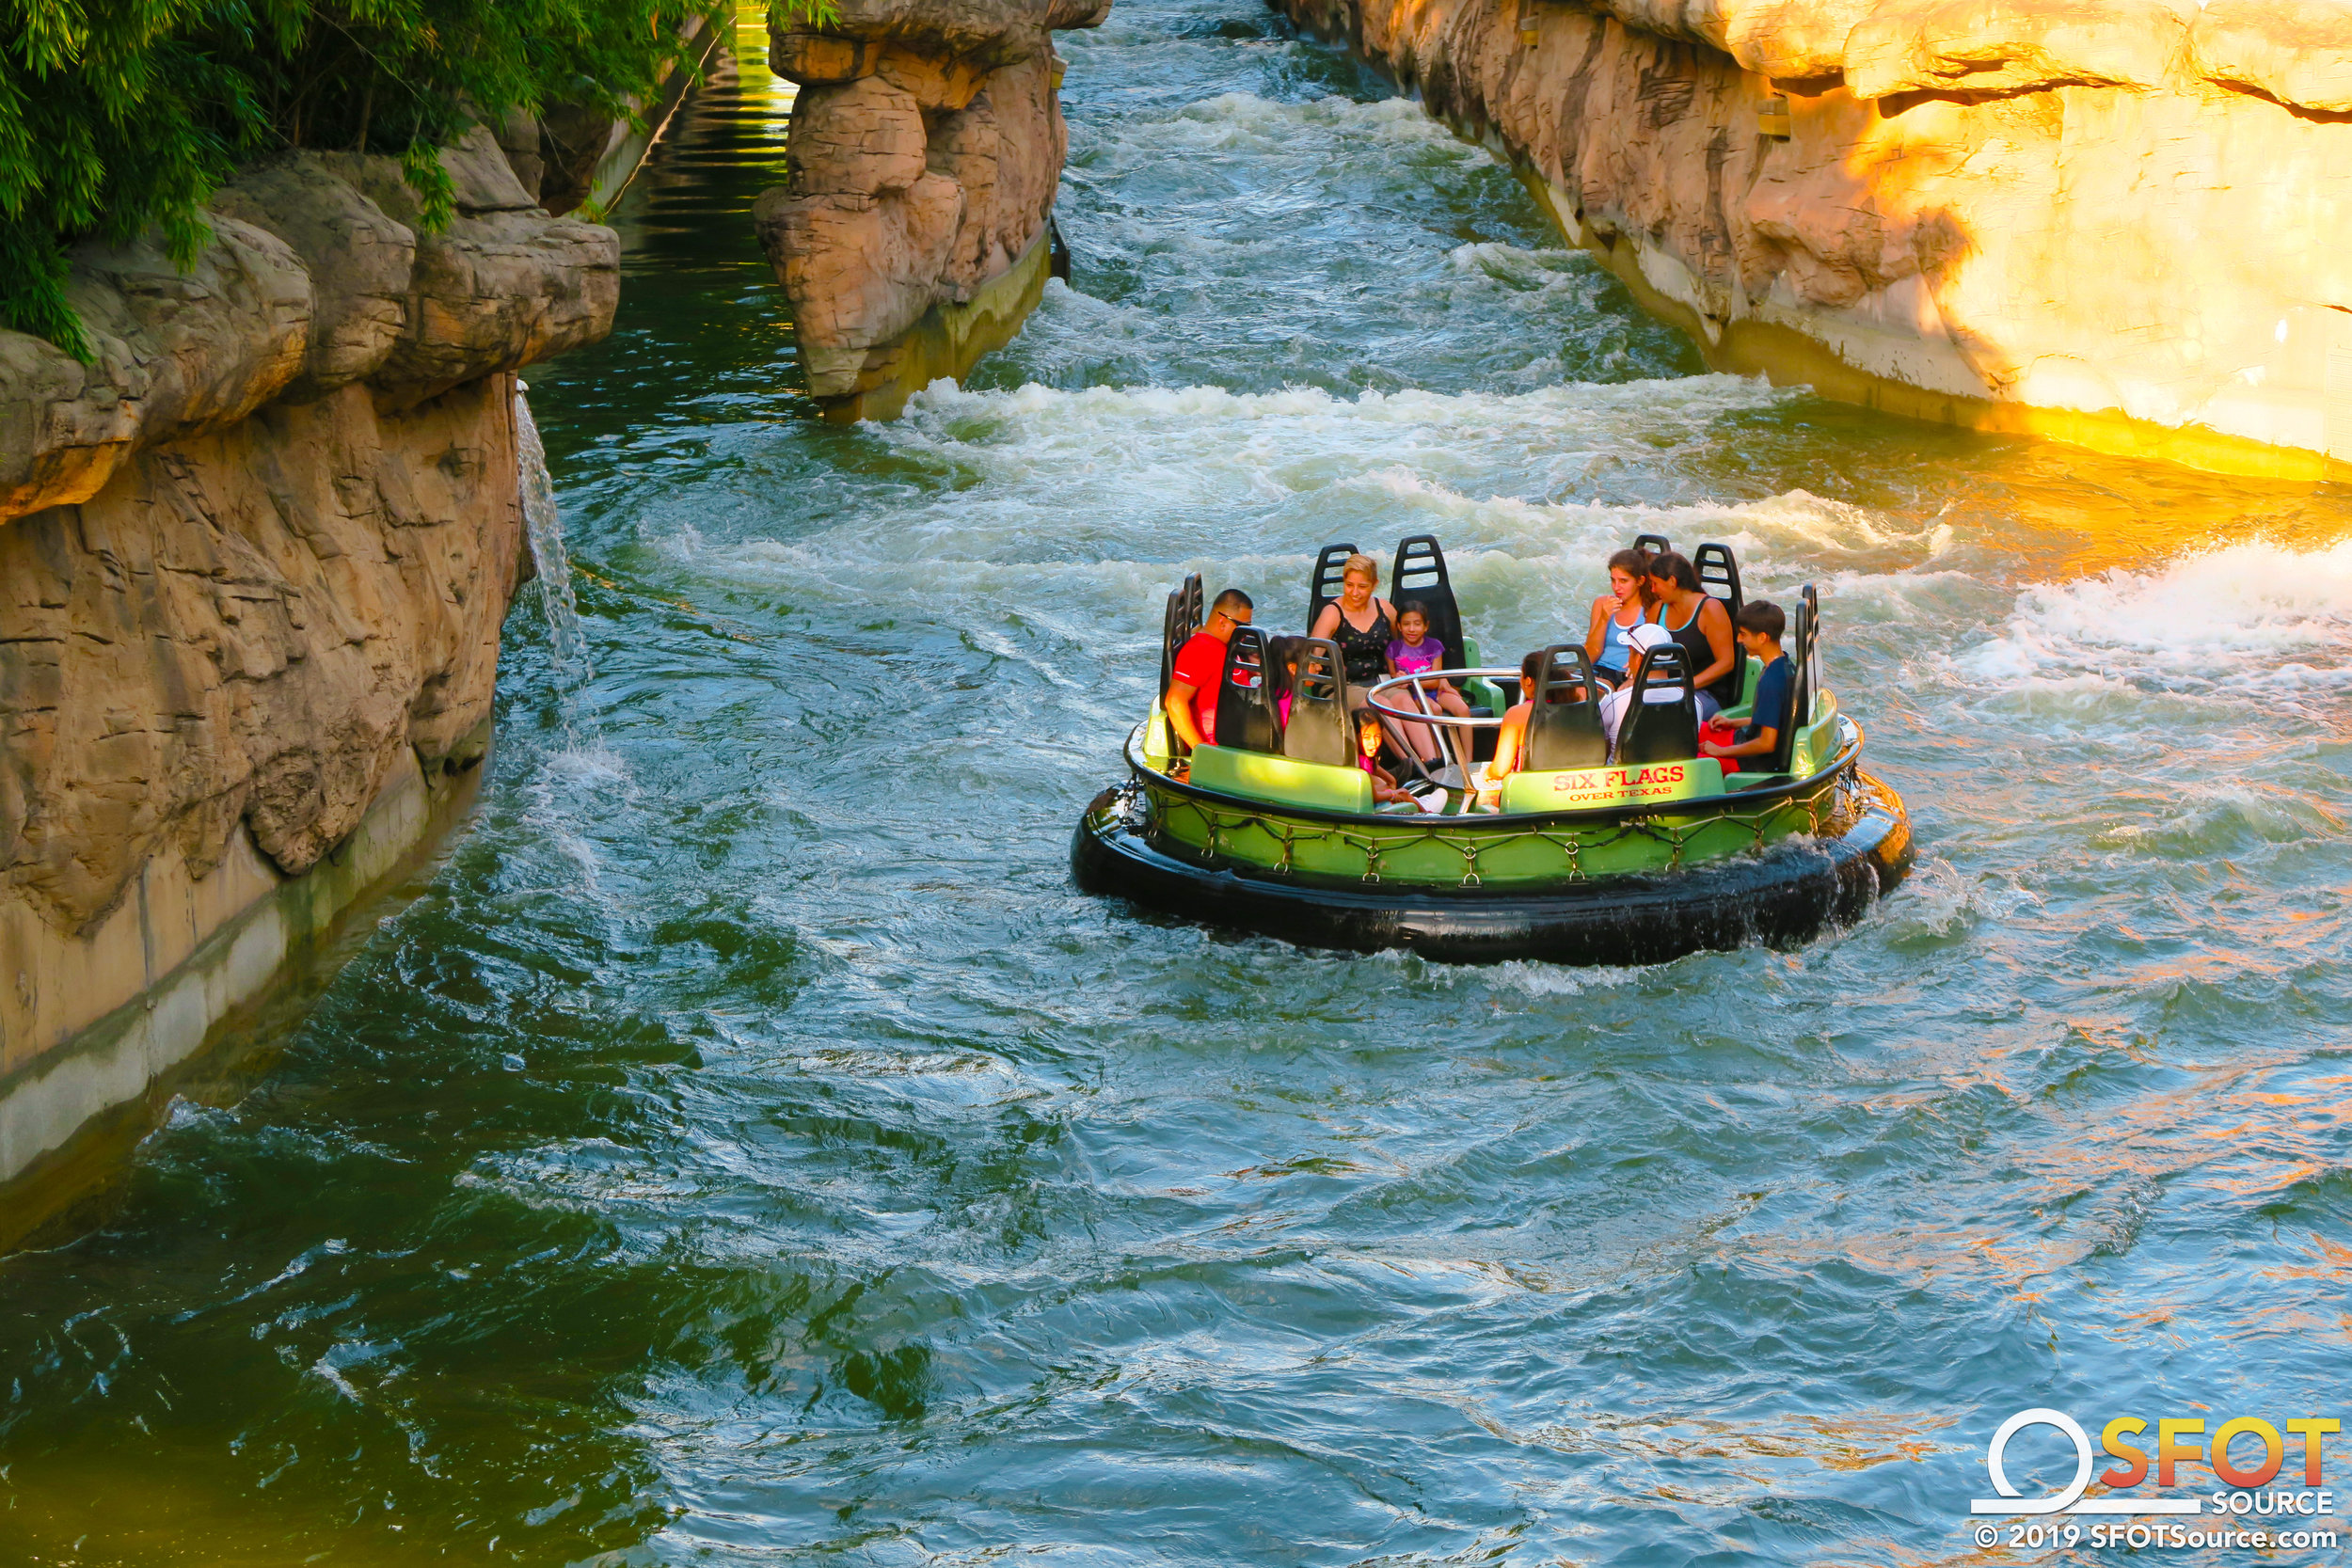 Most passengers are guaranteed to be soaked during the ride cycle.